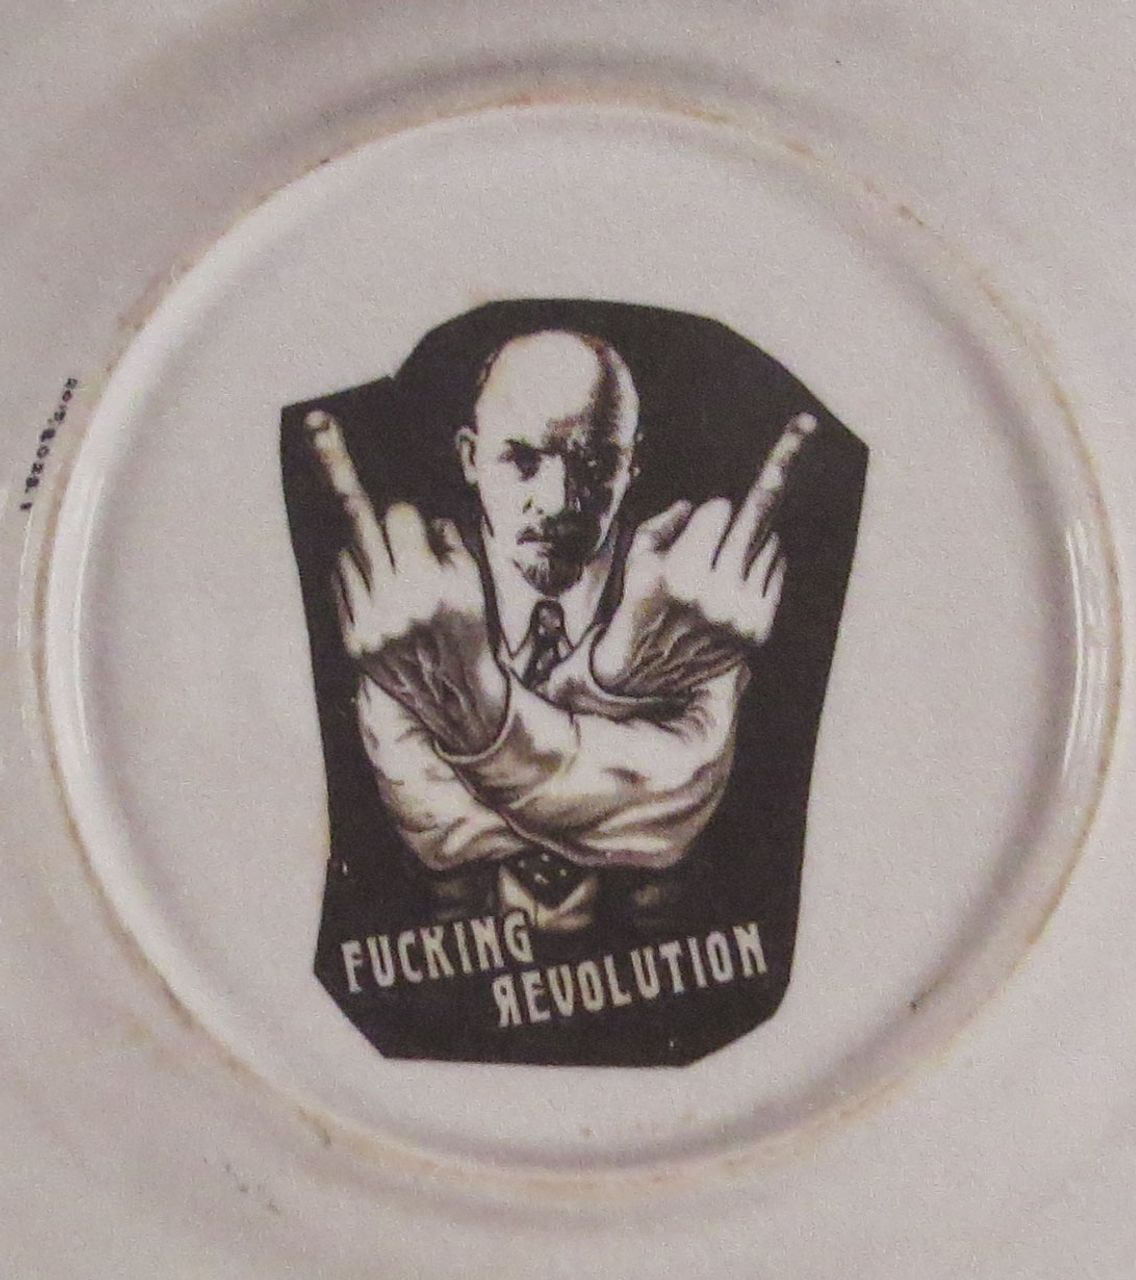 Lenin image on plate, after 1989, courtesy of the British Museum